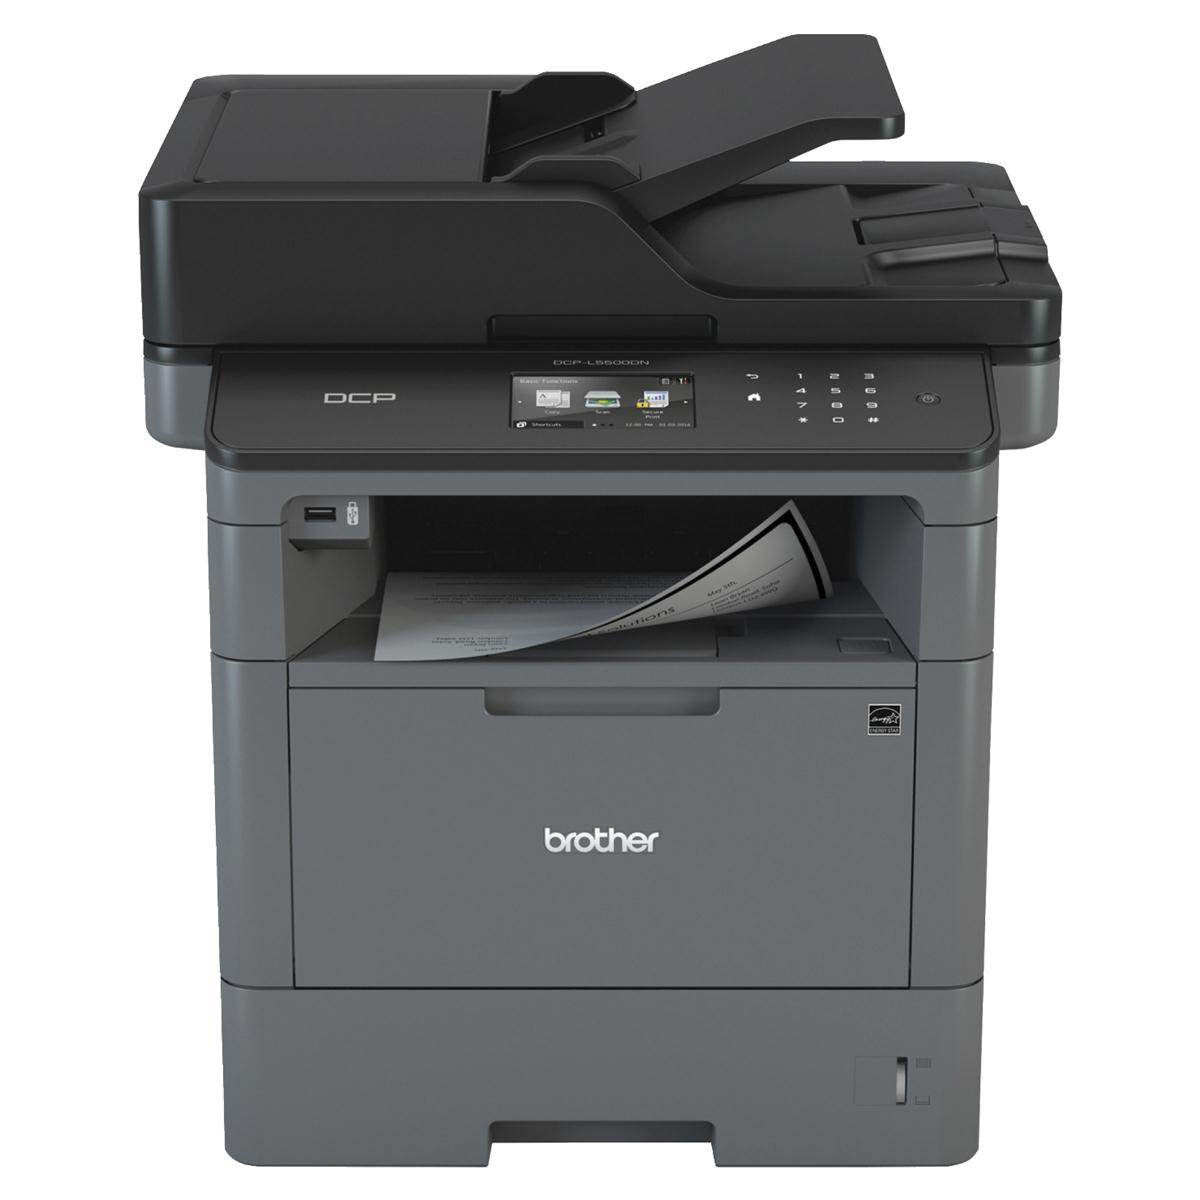 Brother DCP-L5500DN Pro All-In-One Mono A4 Laser Printer 40ppm Auto Duplex Ref DCPL5500DNZU1